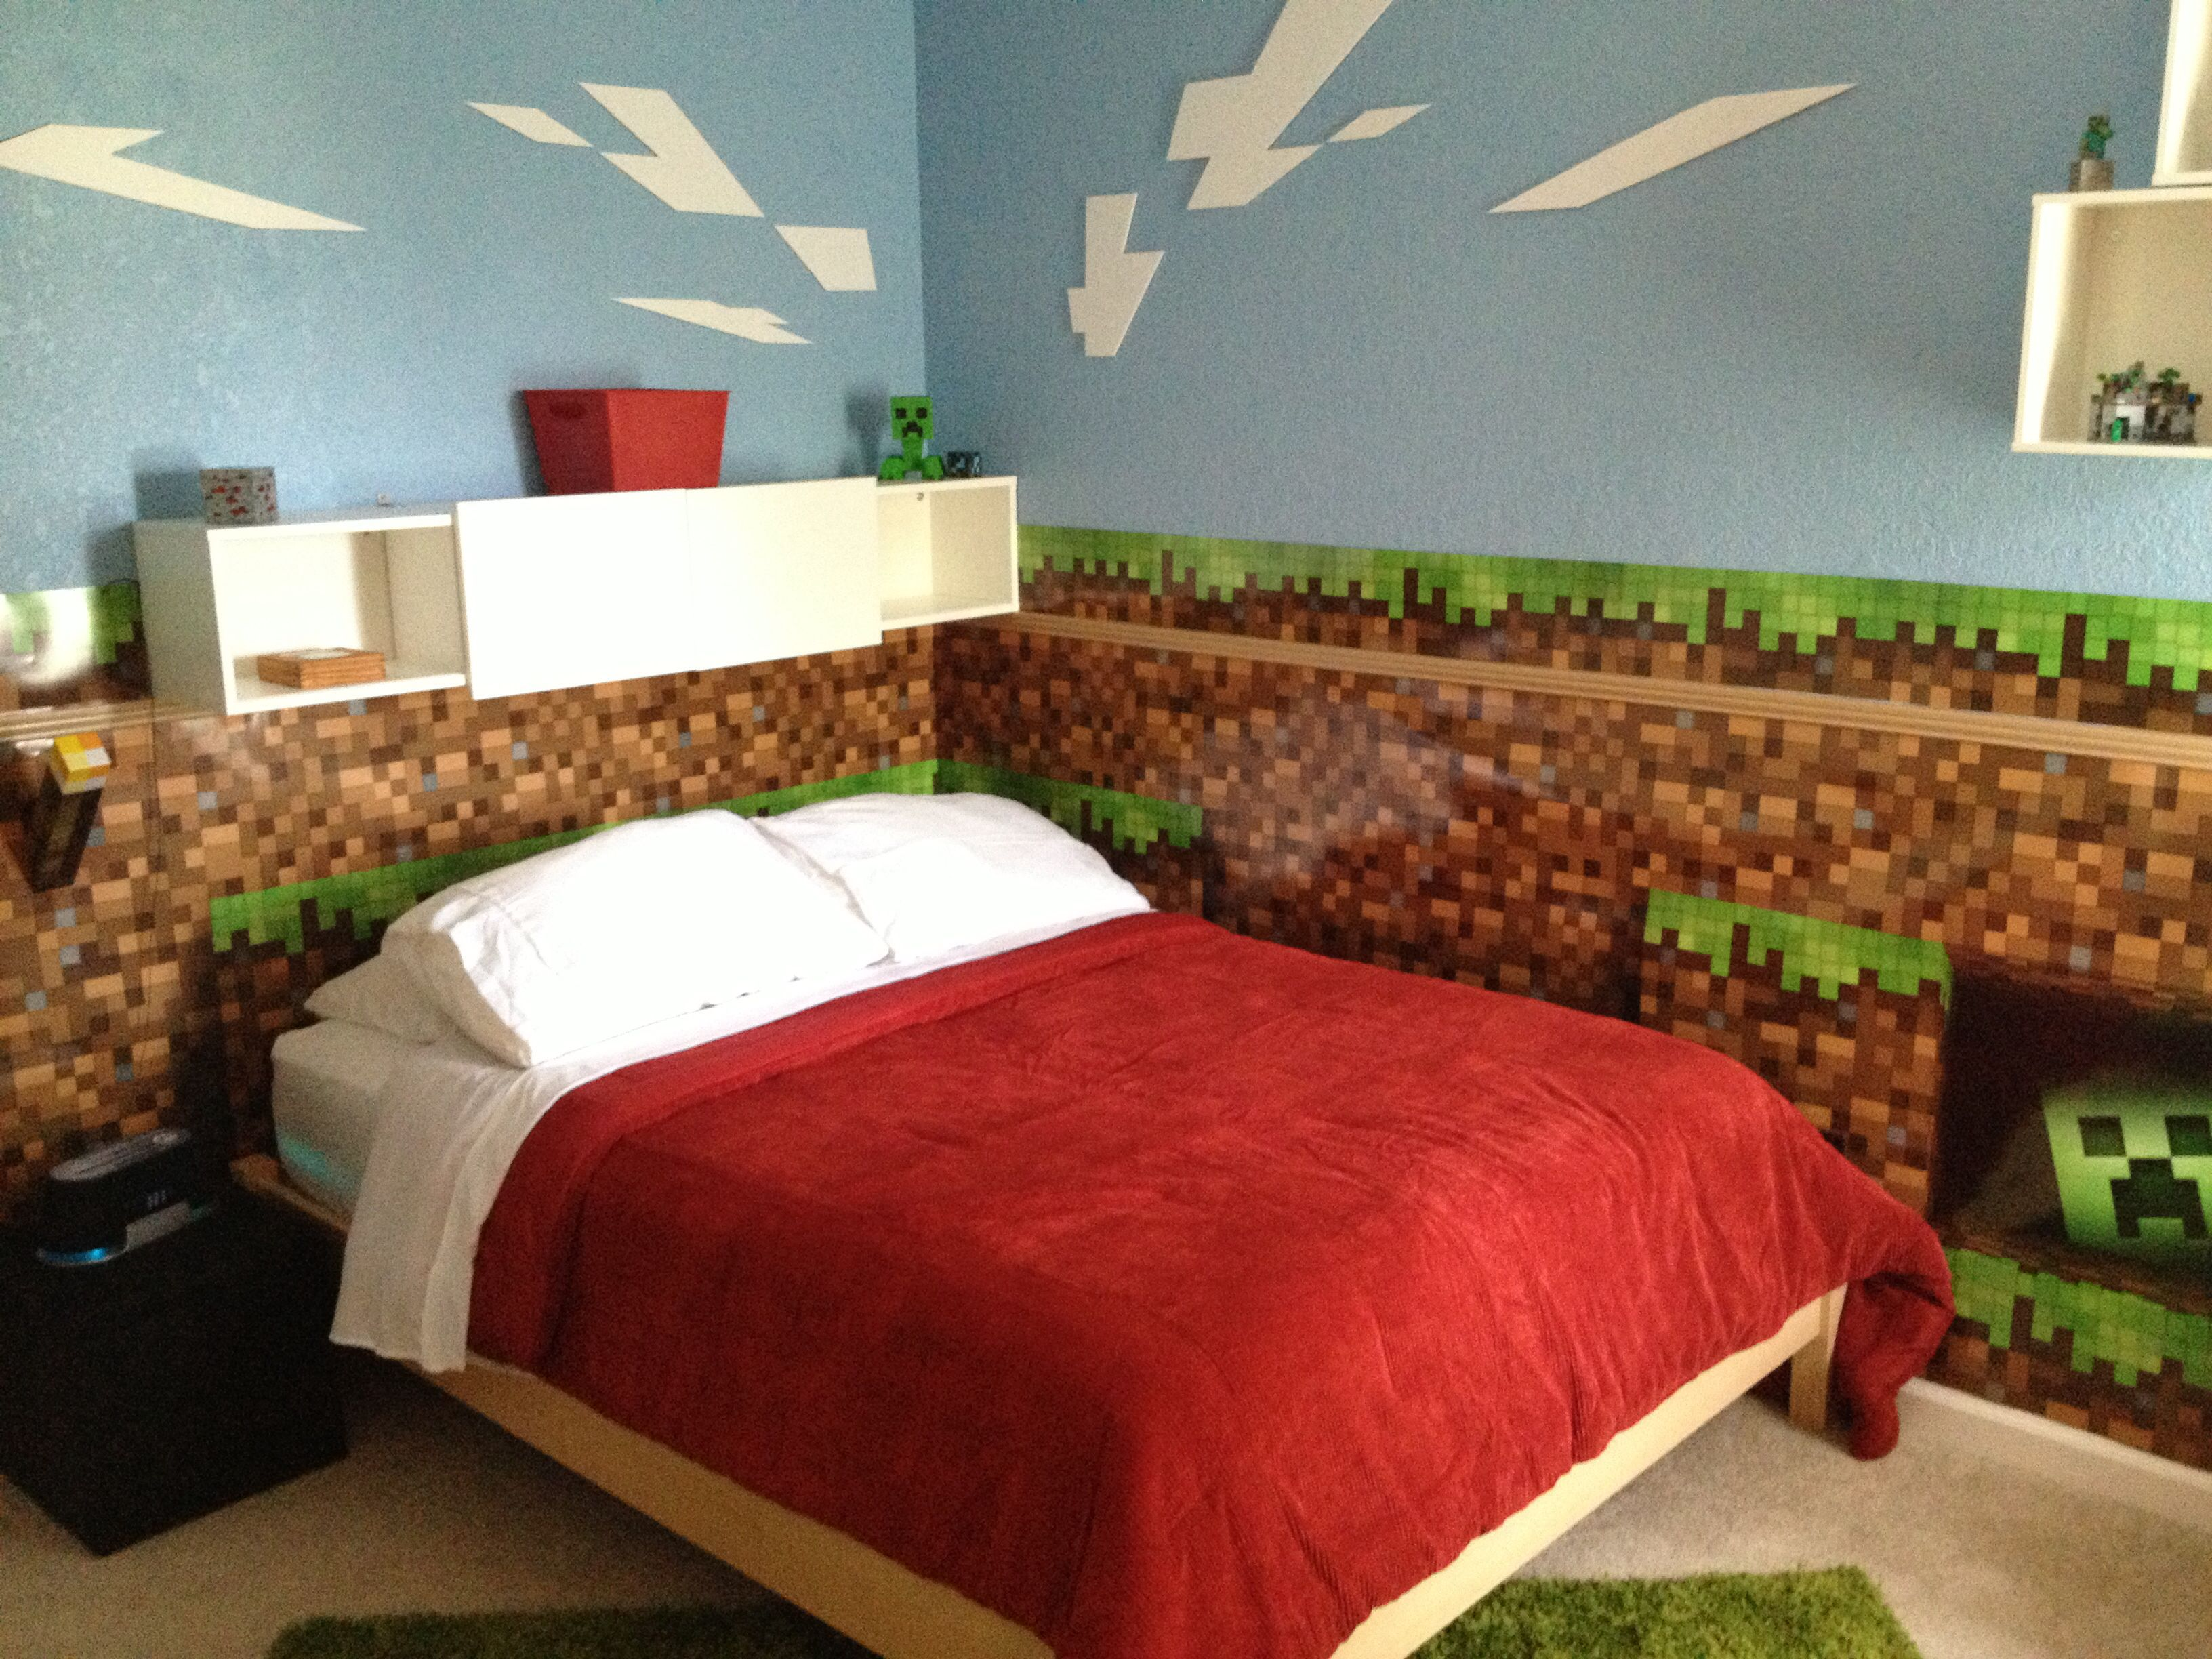 Minecraft Schlafzimmer Minecraft Bedroom This Is Cool But I 39m Just Doing One